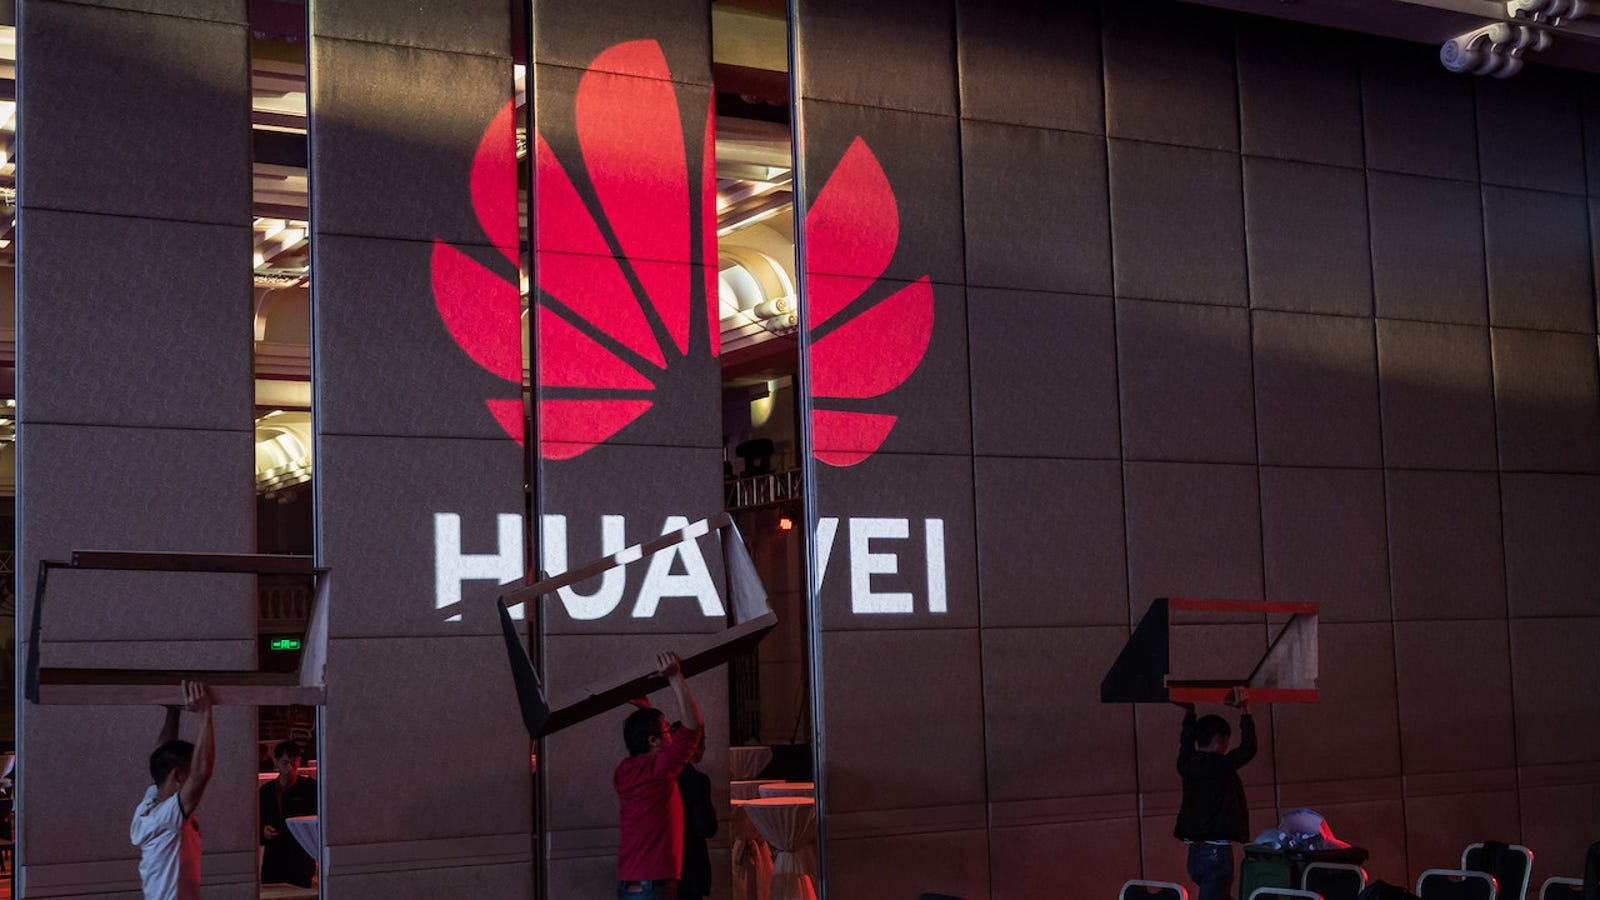 QnA VBage Backdoors in Huawei Equipment Discovered by Vodafone Italy in 2009